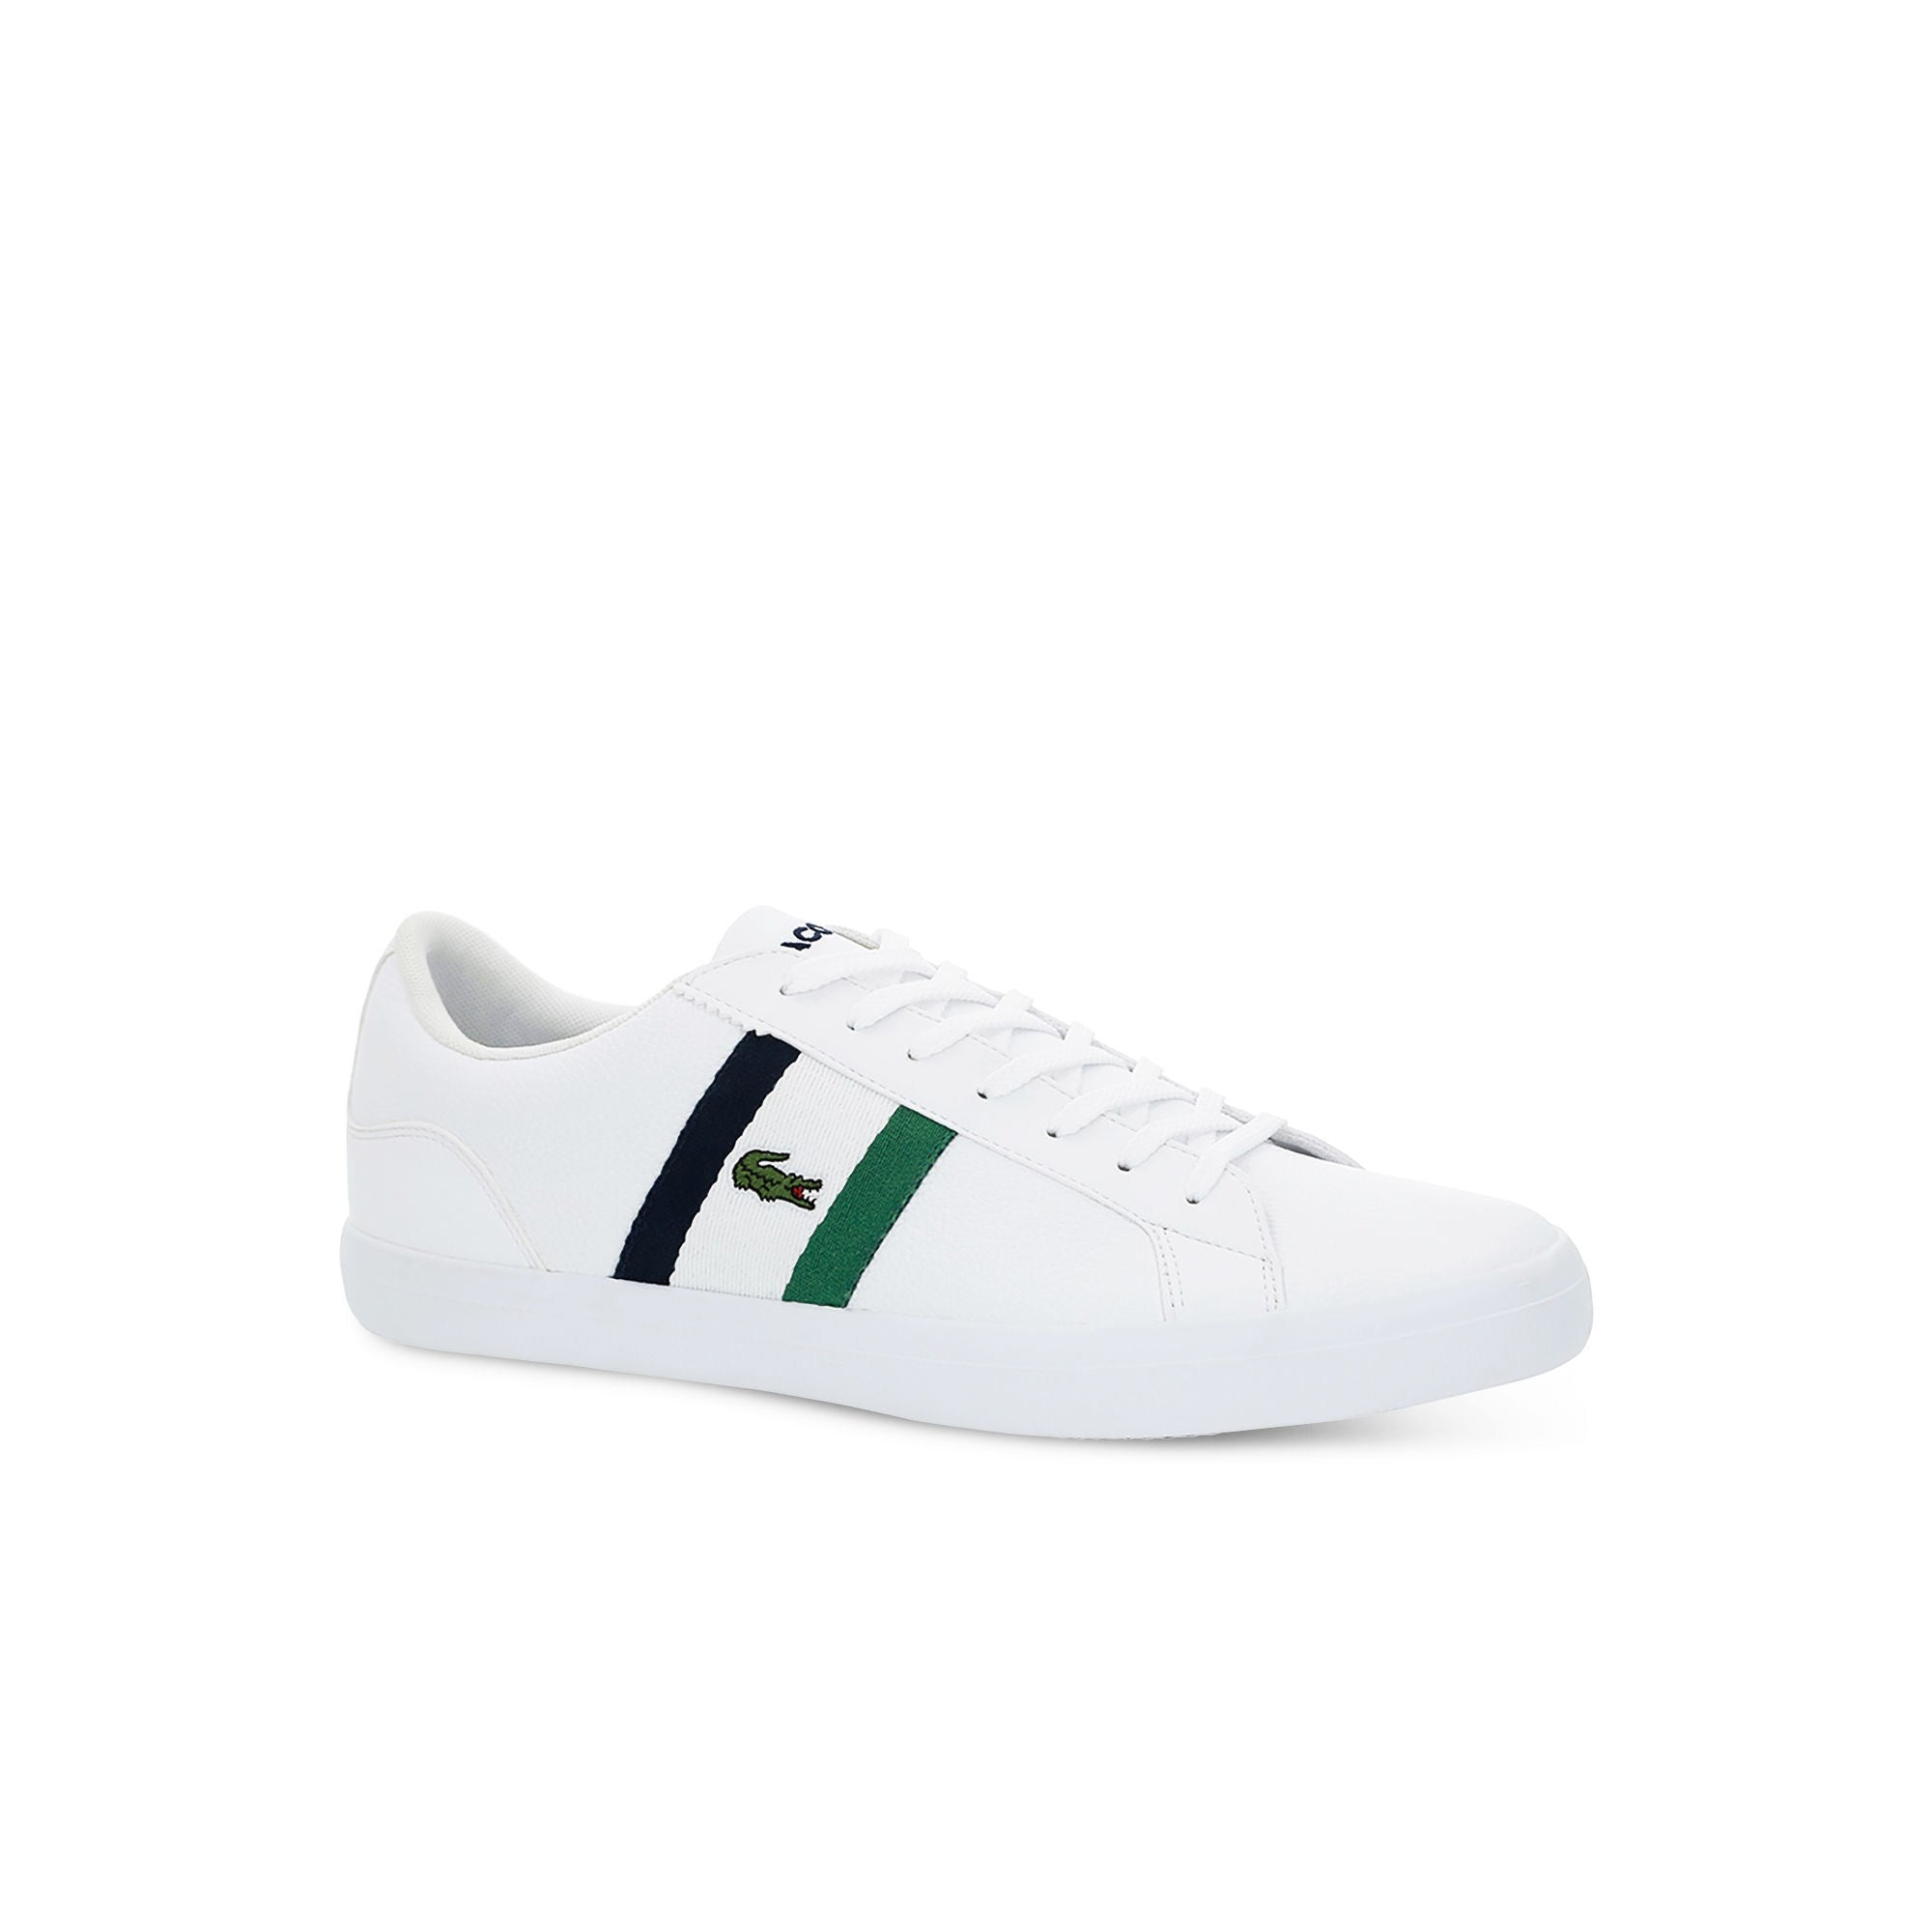 482cadb6d Men s Lacoste Lerond Tumbled Leather Trainers White Green